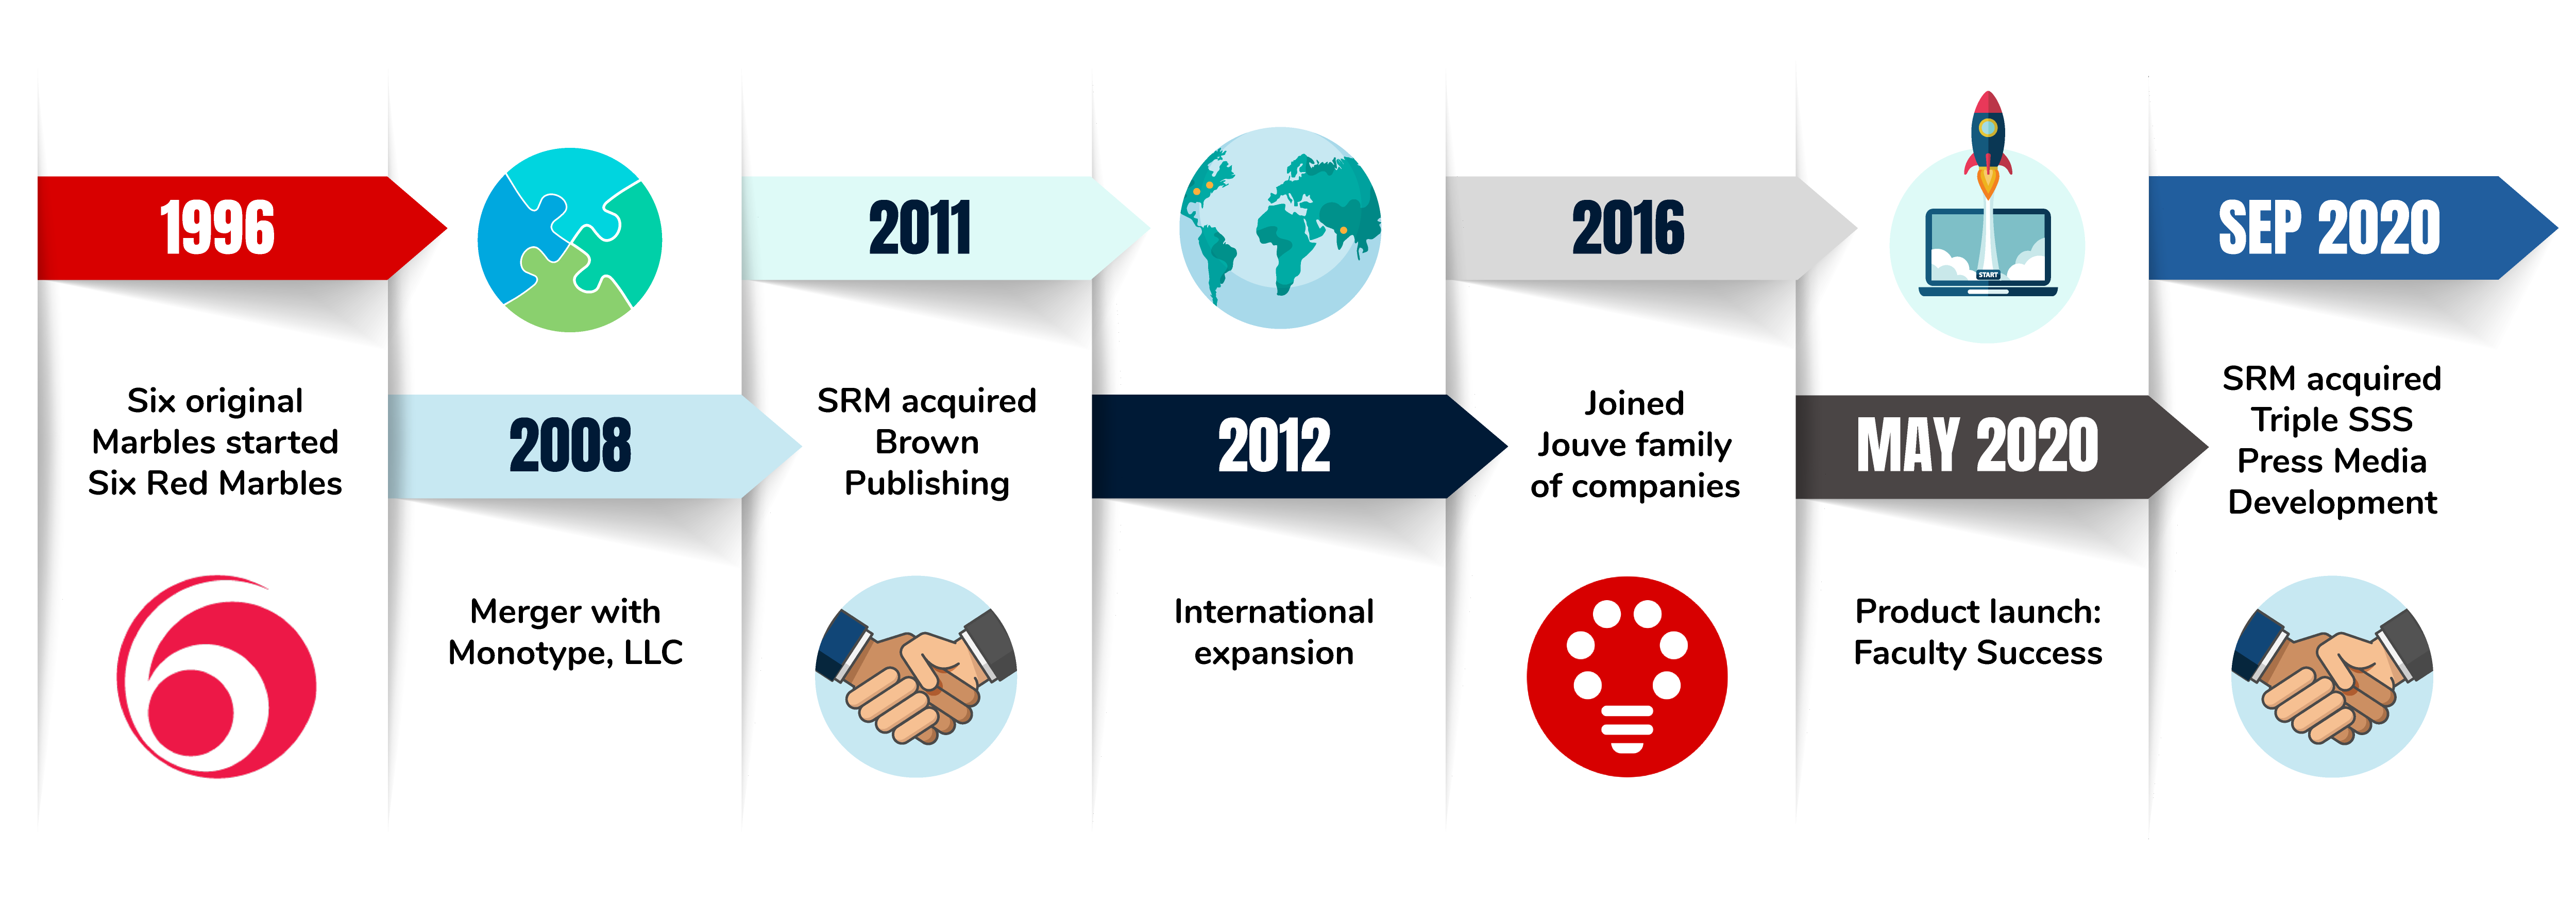 A brief timeline of SRM's history: 1996, founded; 2008, merger with Monotype; 2011, acquired Brown Publishing; 2012 first international expansion; 2016, joined Jouve; 2020, launched Faculty Success and acquired Triple SSS Press